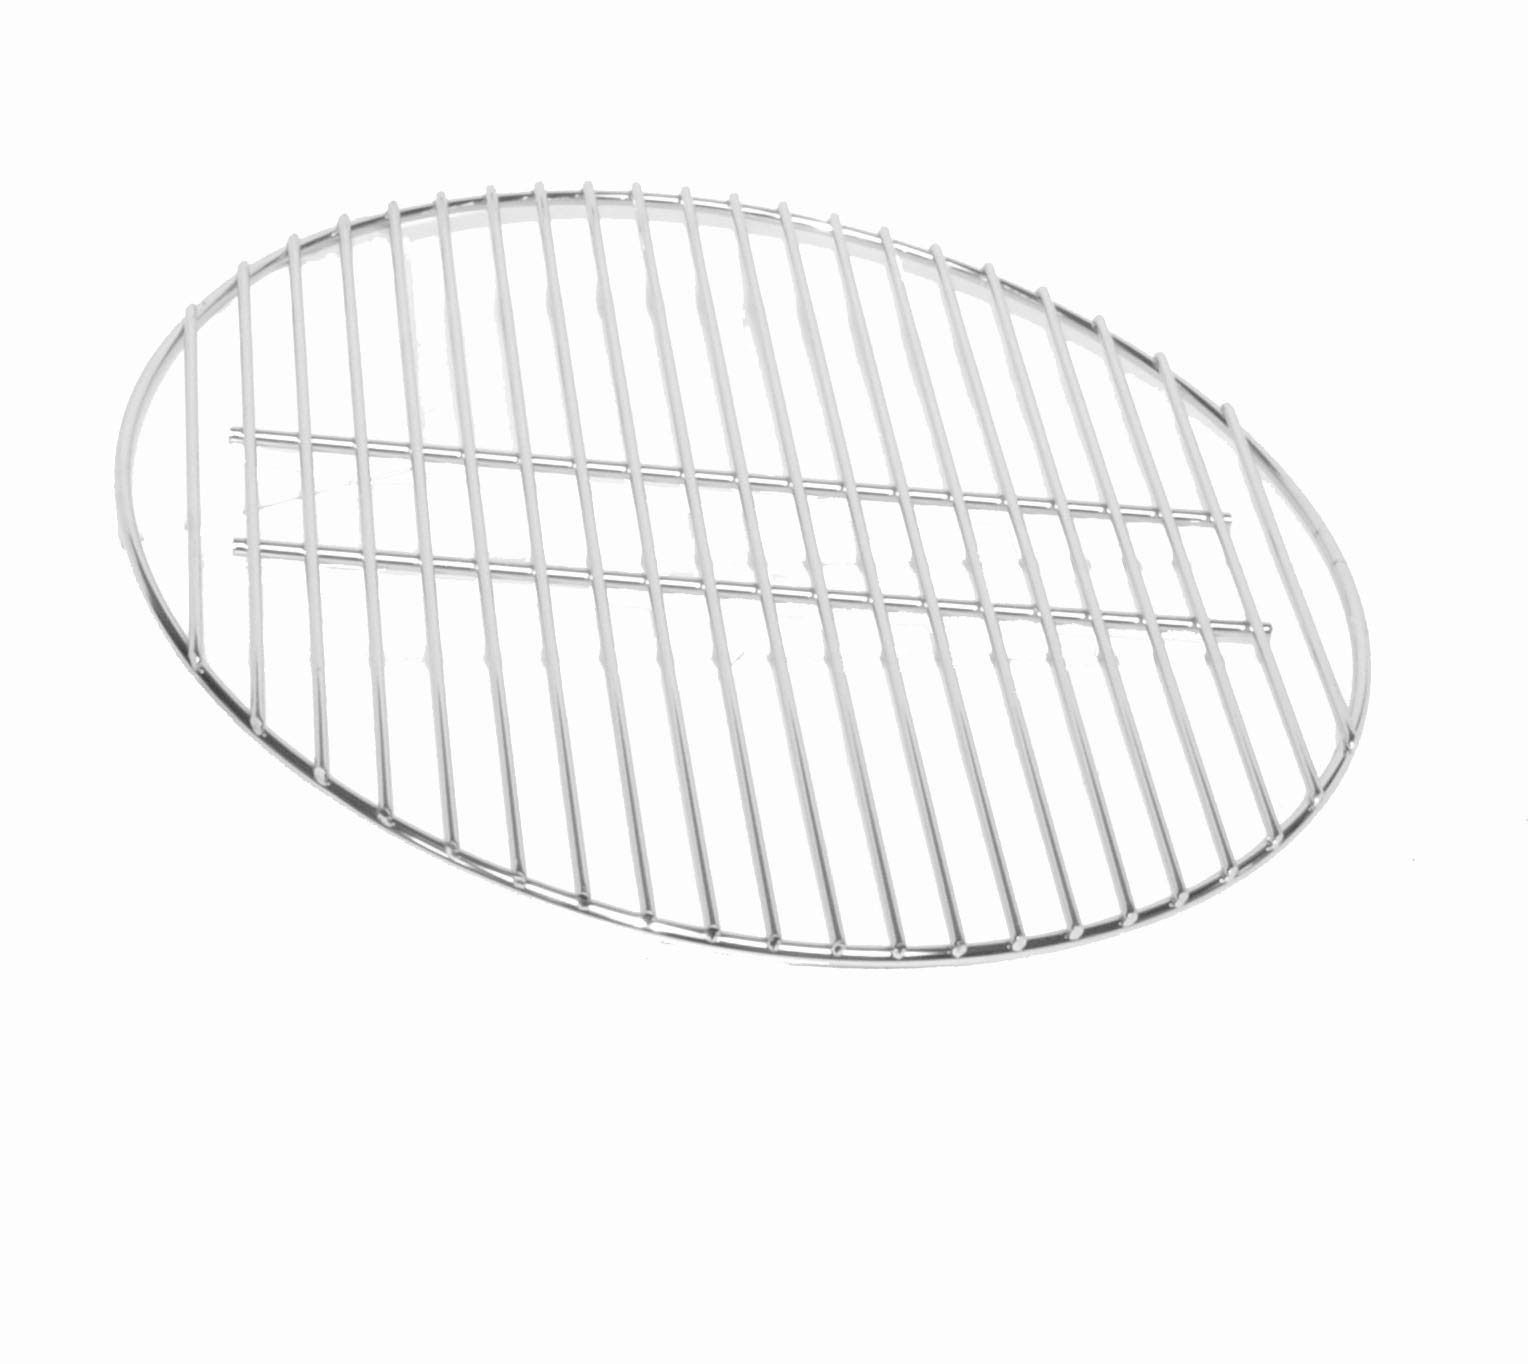 Weber # 80624 Lower Cooking Grate for 18-1/2'' Smokey Mountain Cooker